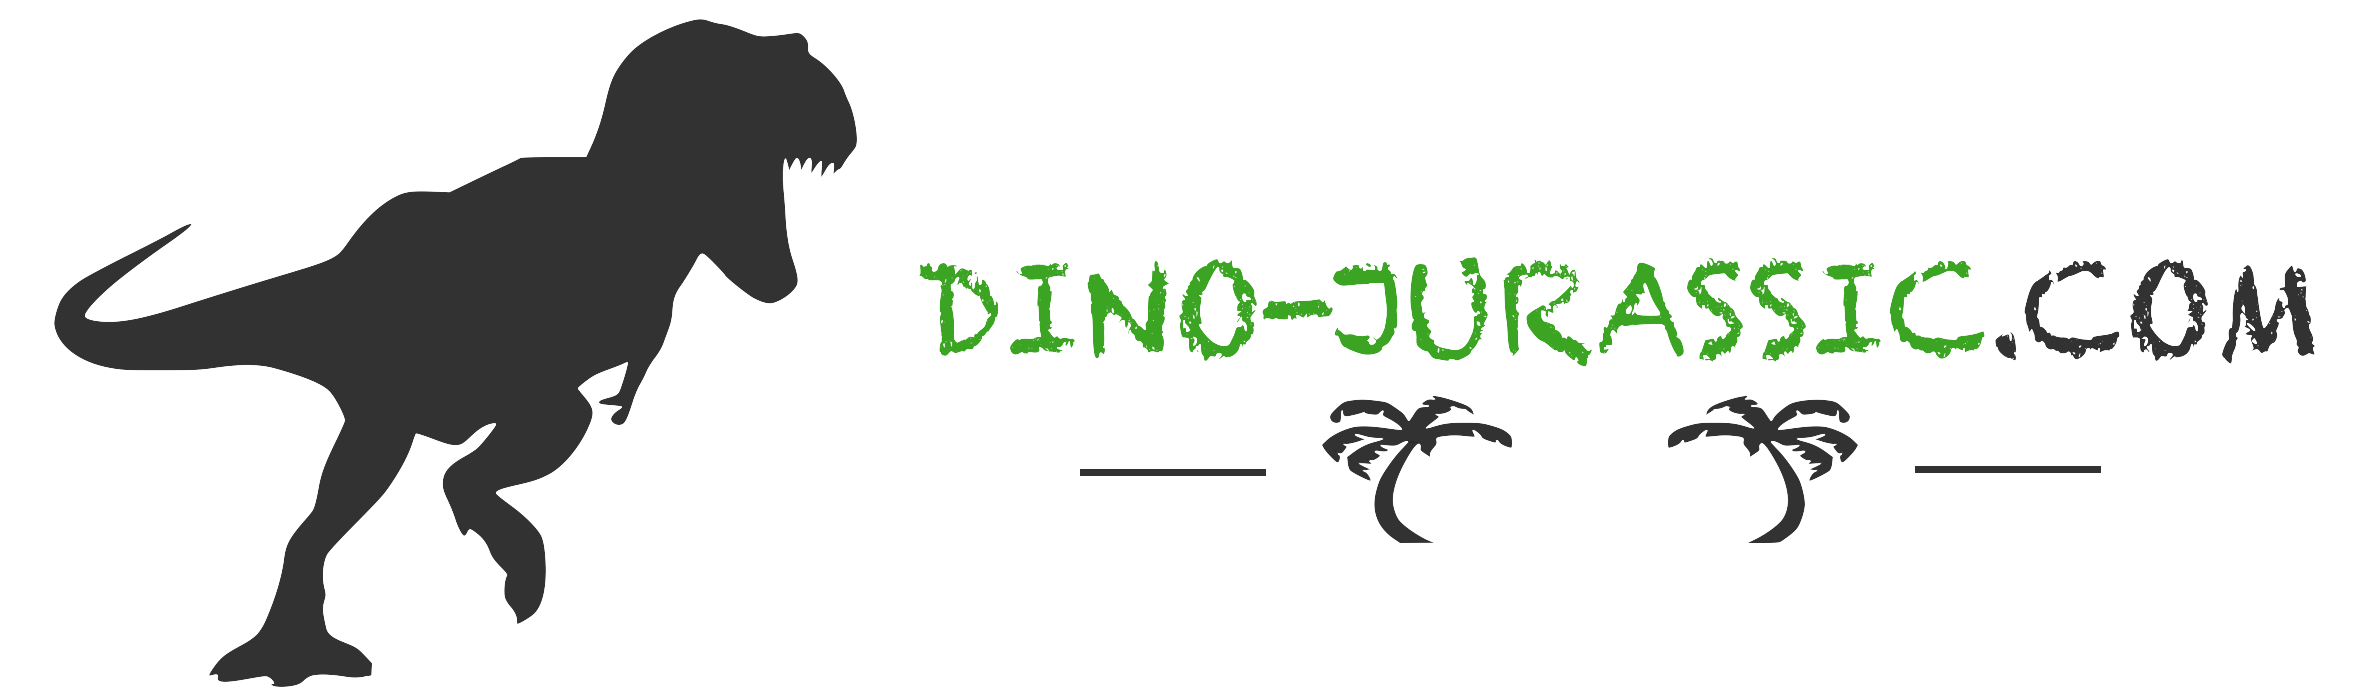 Dino Jurassic Coupons and Promo Code